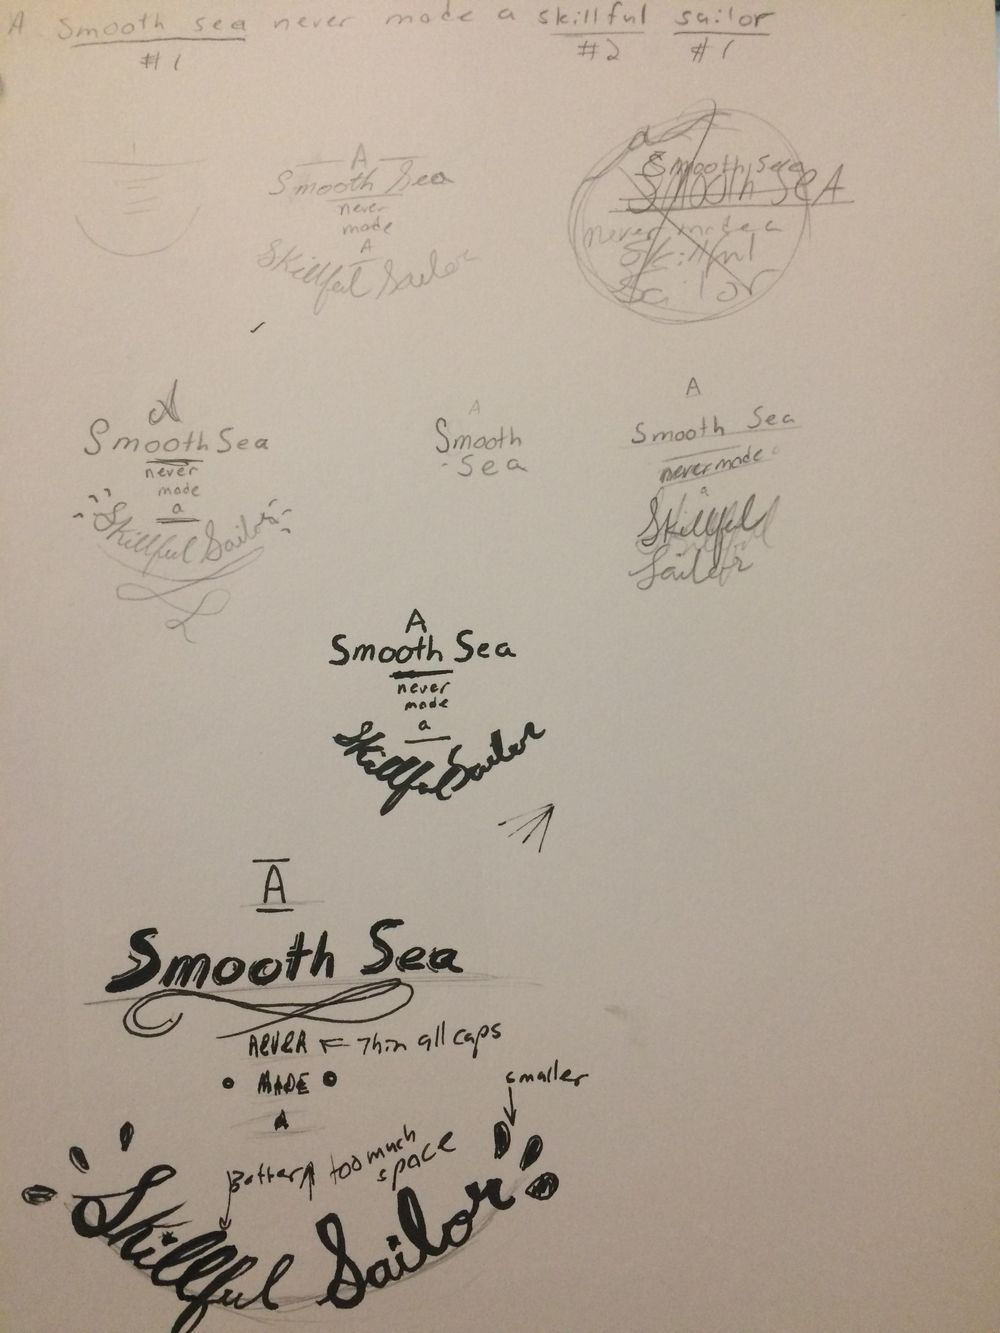 Smooth Sea Quote - image 1 - student project